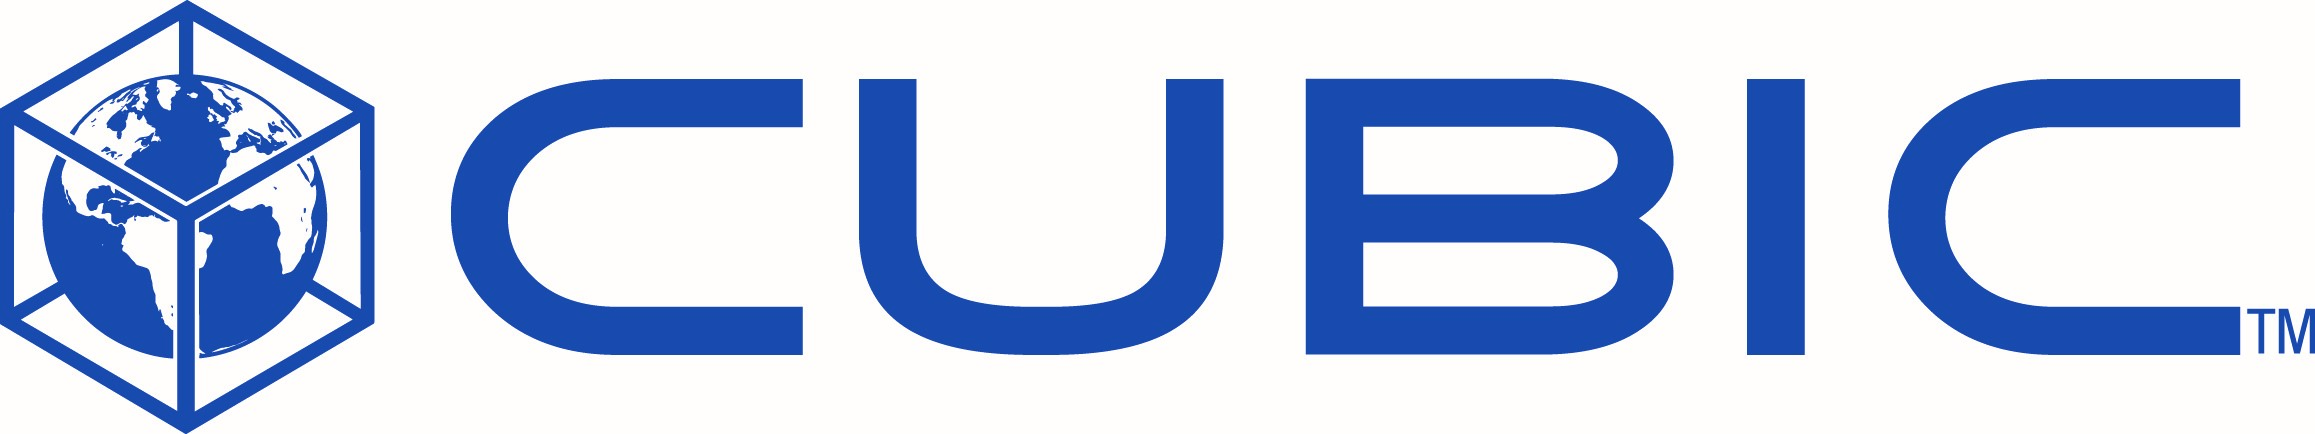 Cubic-Corporation-Logo-2.jpg